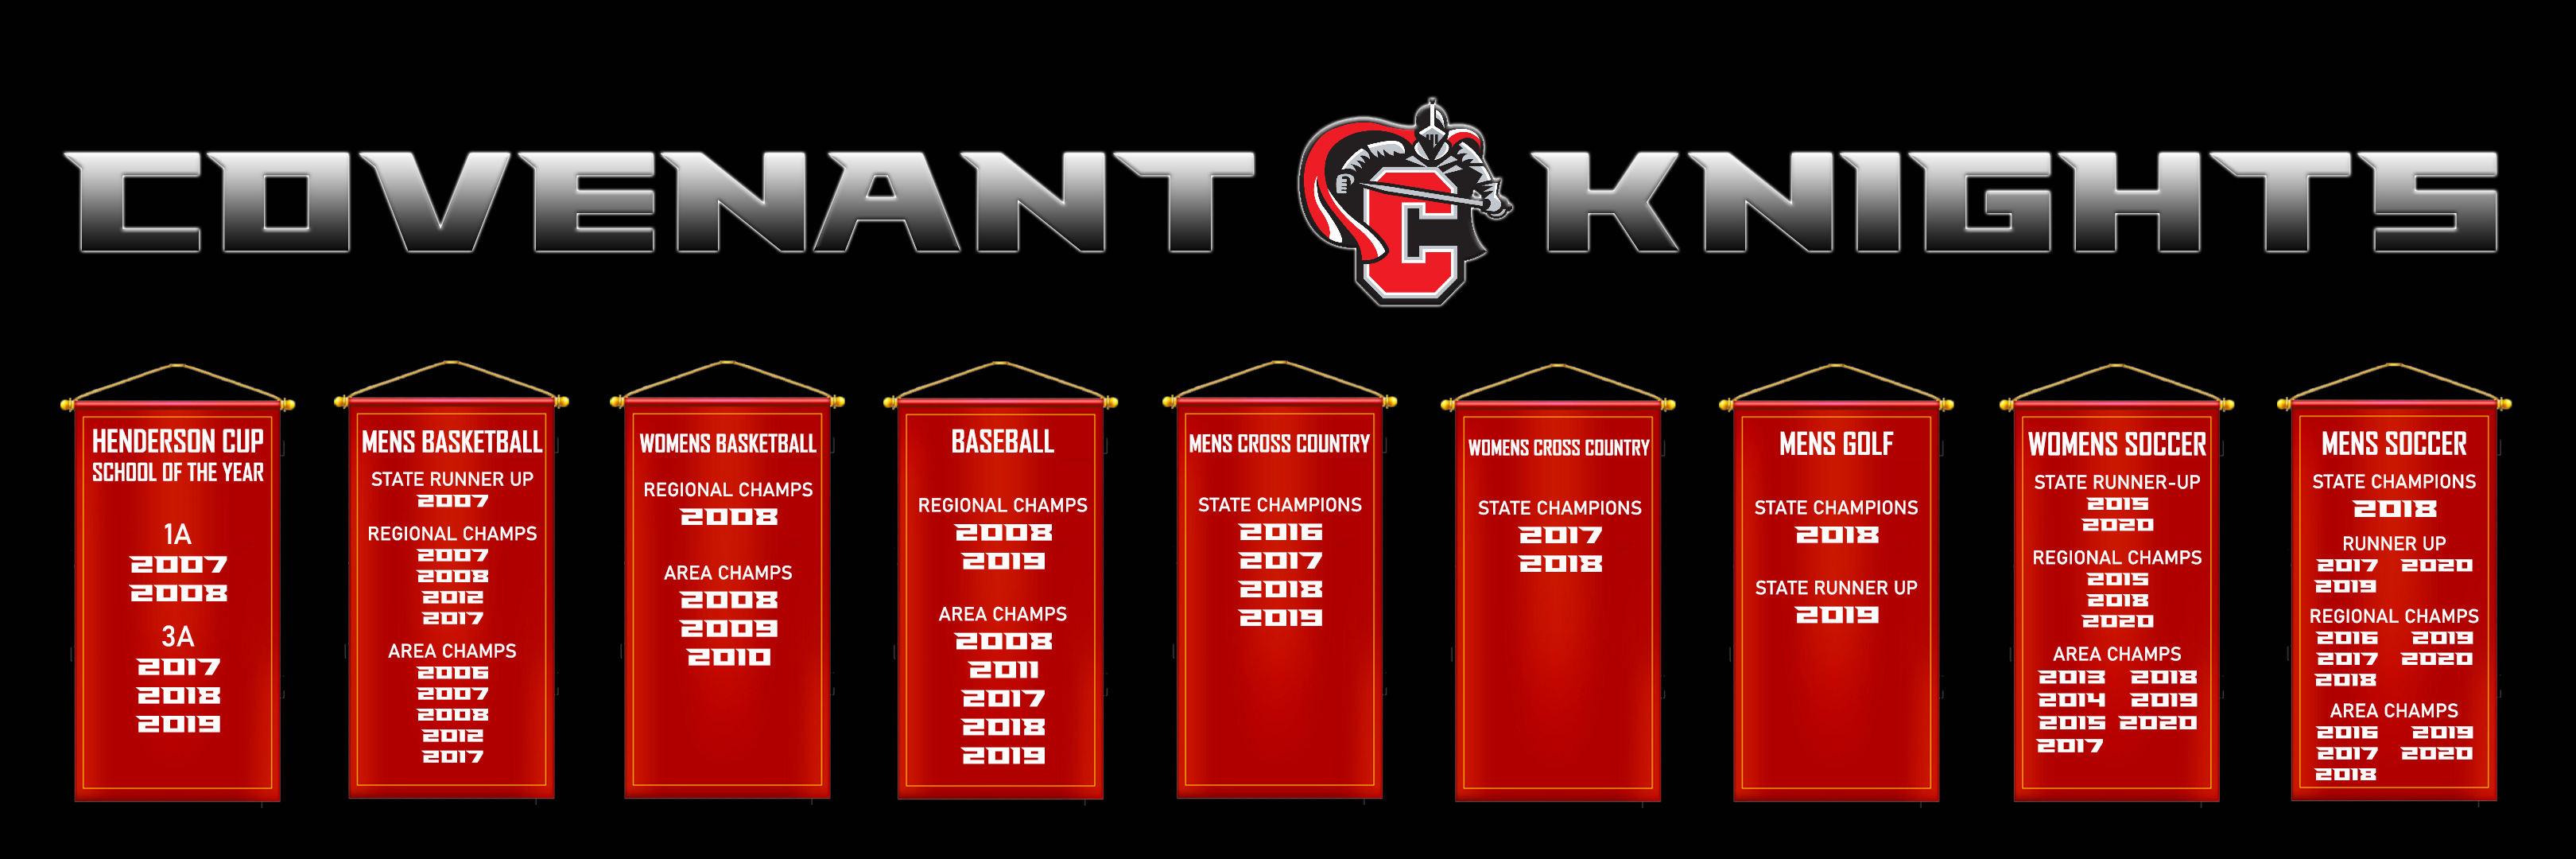 Athletics website banner